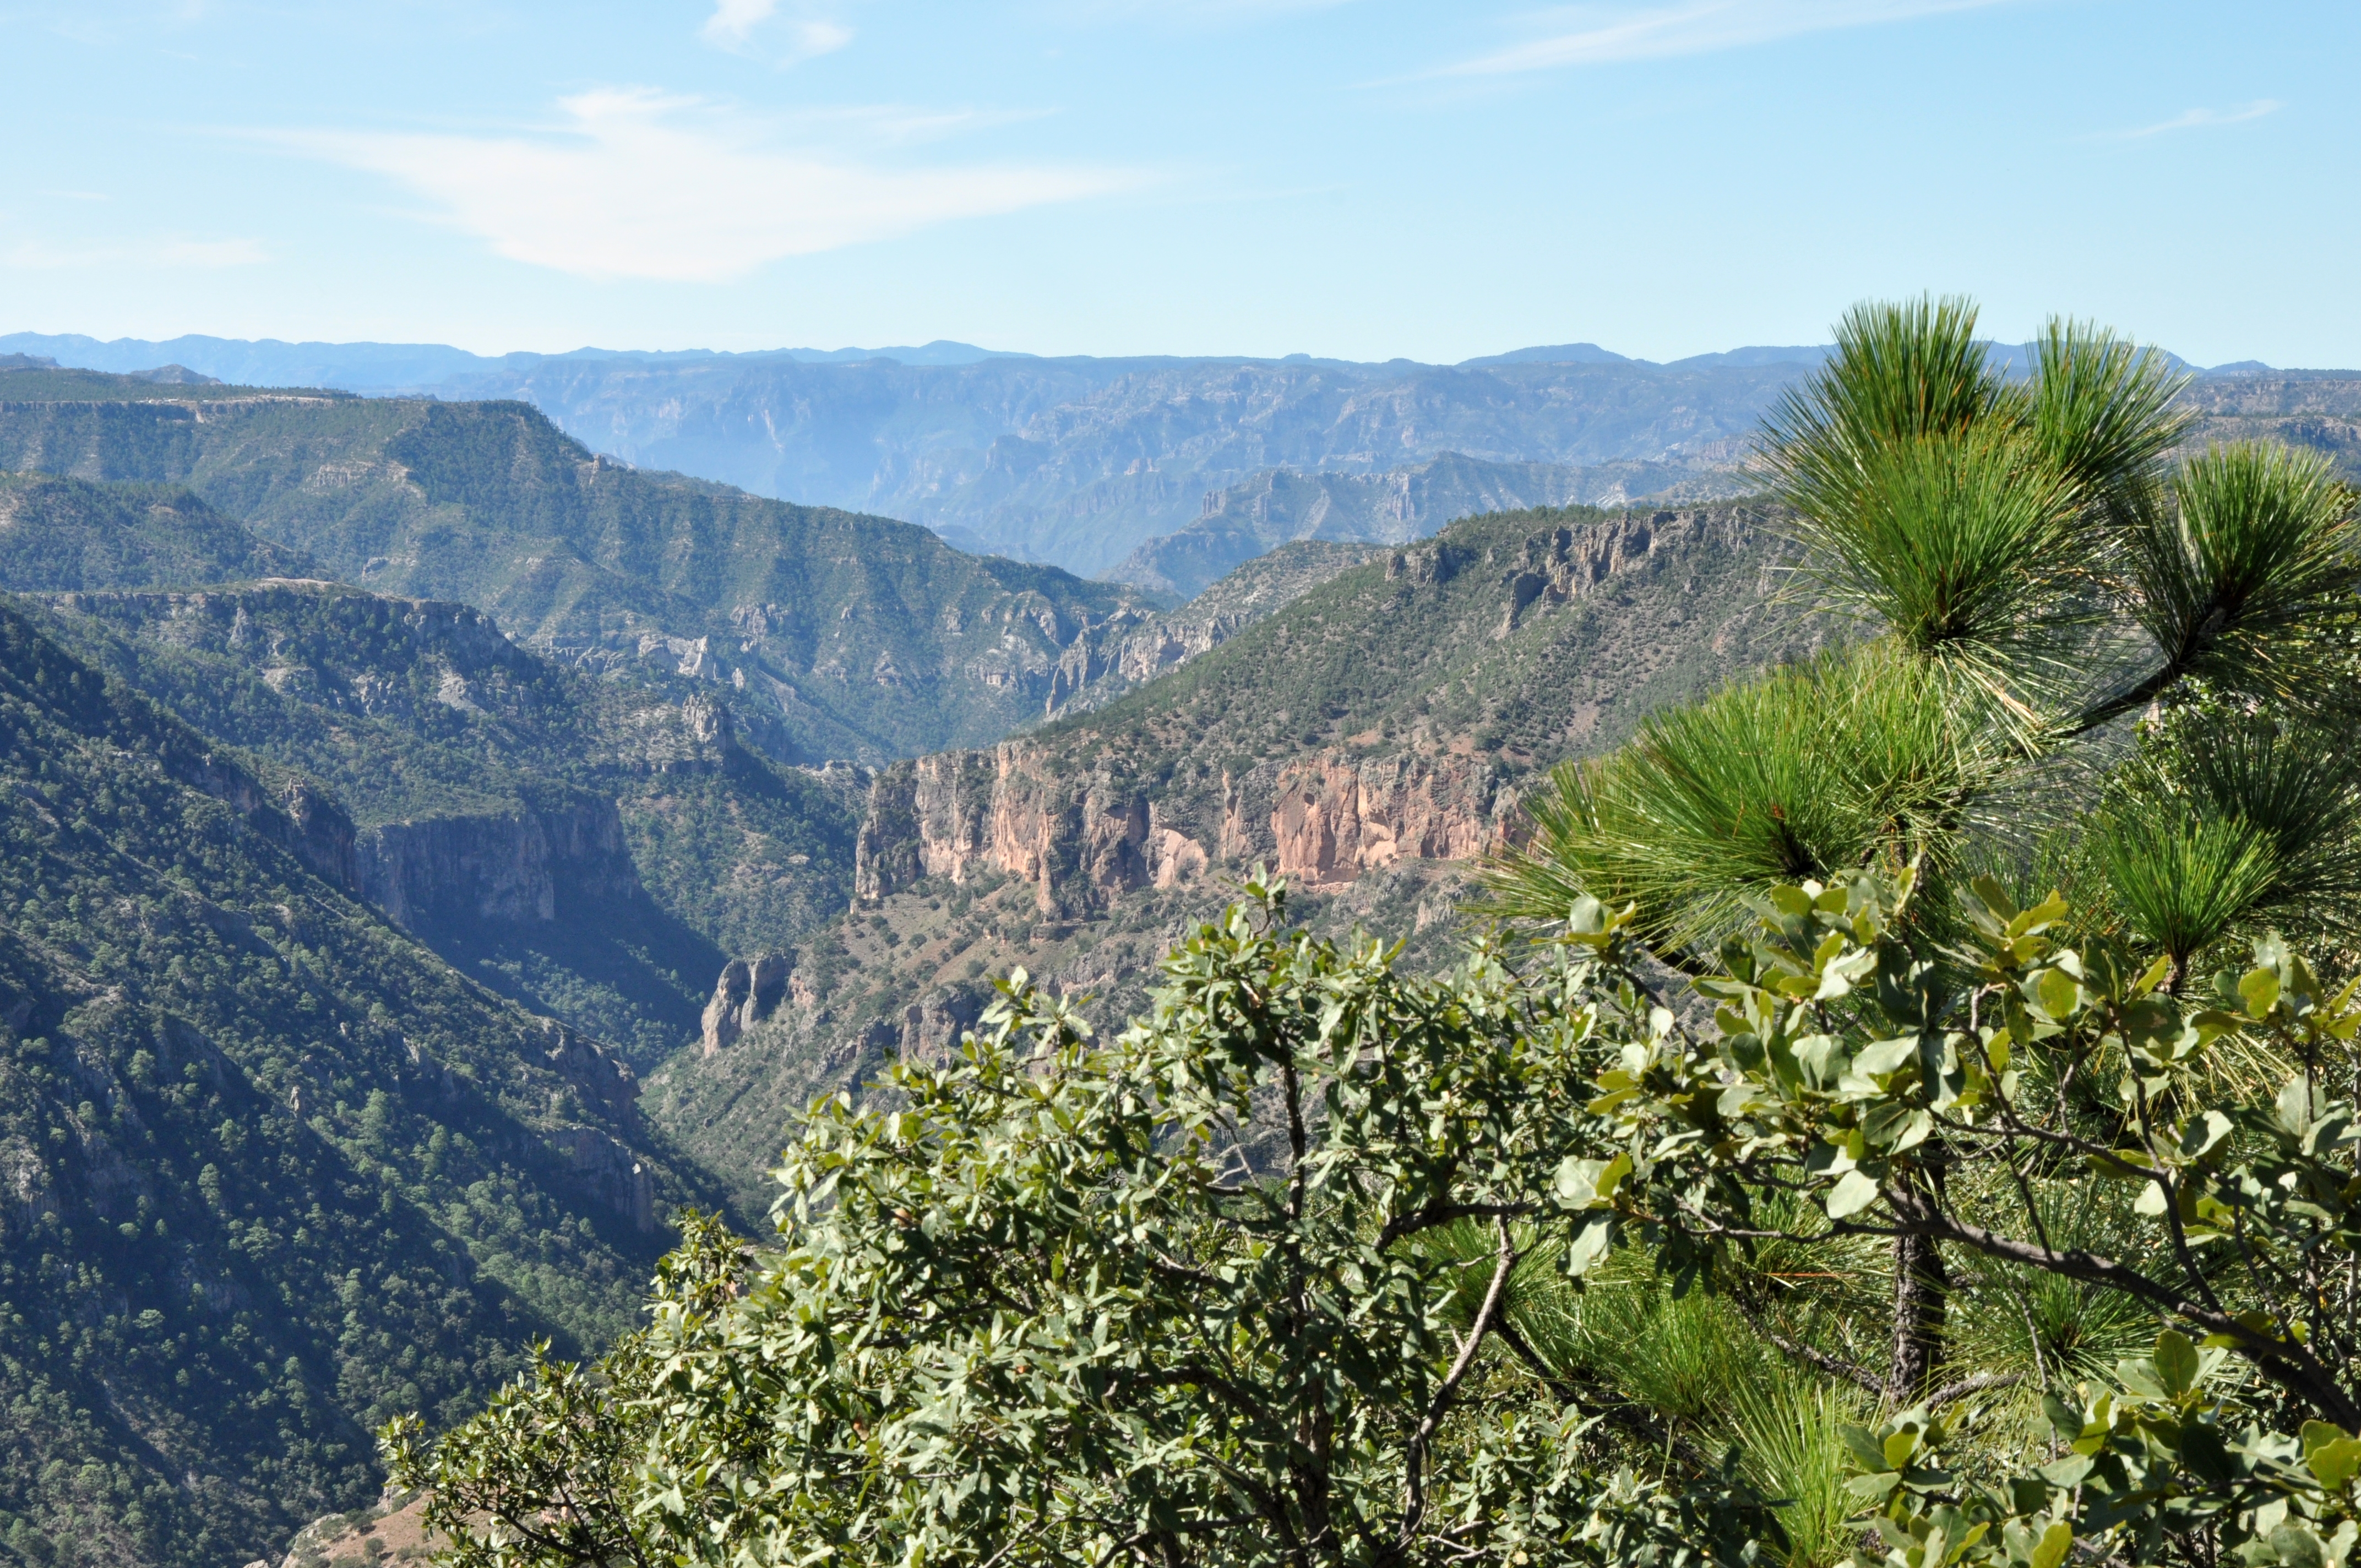 sierra madre big and beautiful singles The 10 best places to retire in mexico  the lake is surrounded by the sierra madre mountains and is a  this area also has the largest singles population owing.